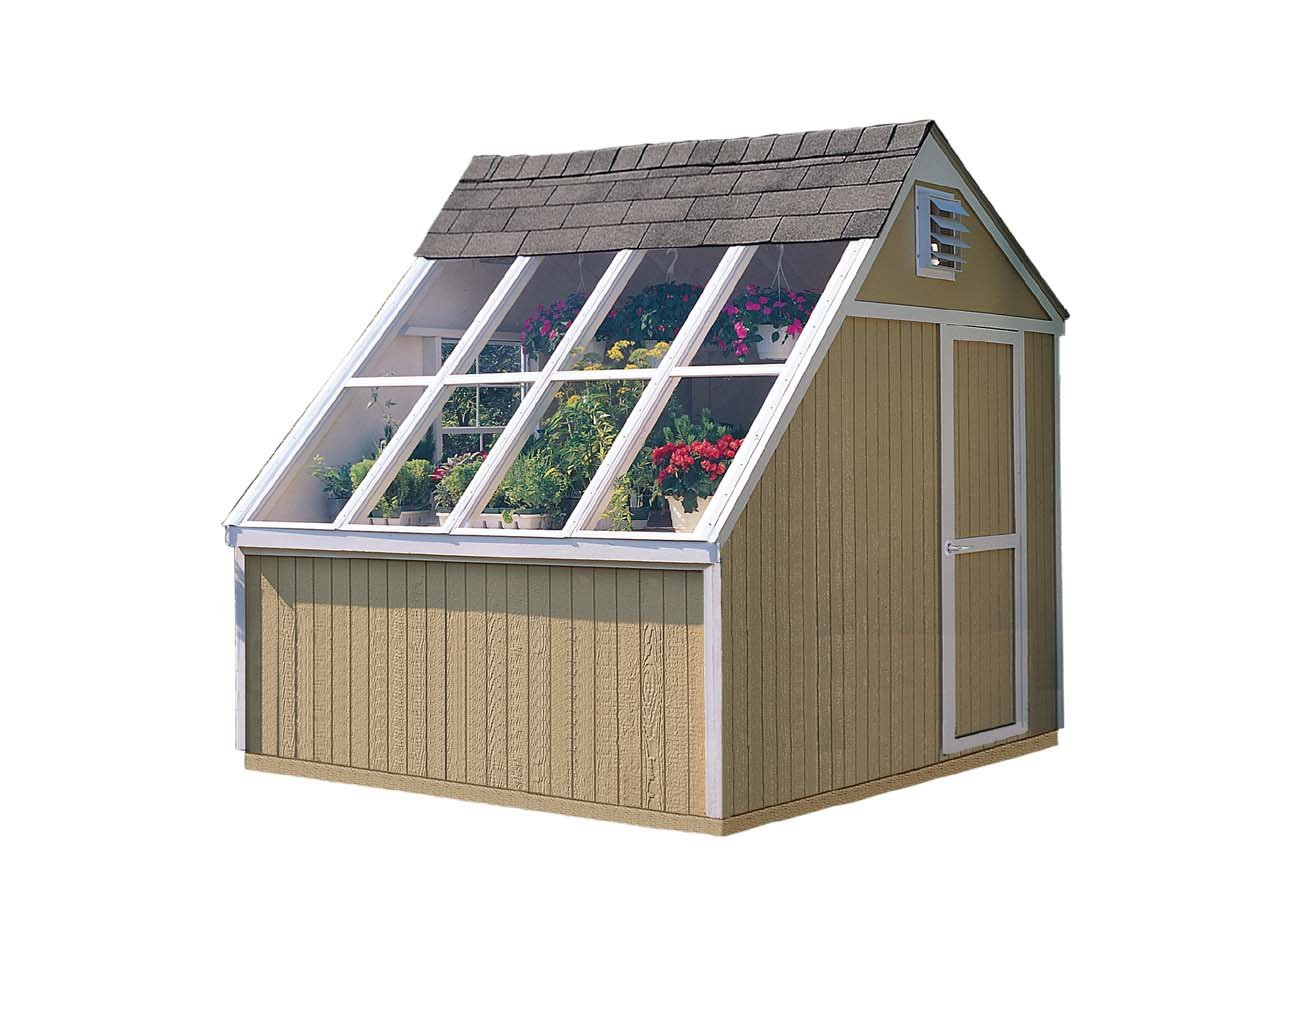 Handy Home Products Phoenix Solar Shed with Floor, 10 by 8-Feet by Handy Home Products